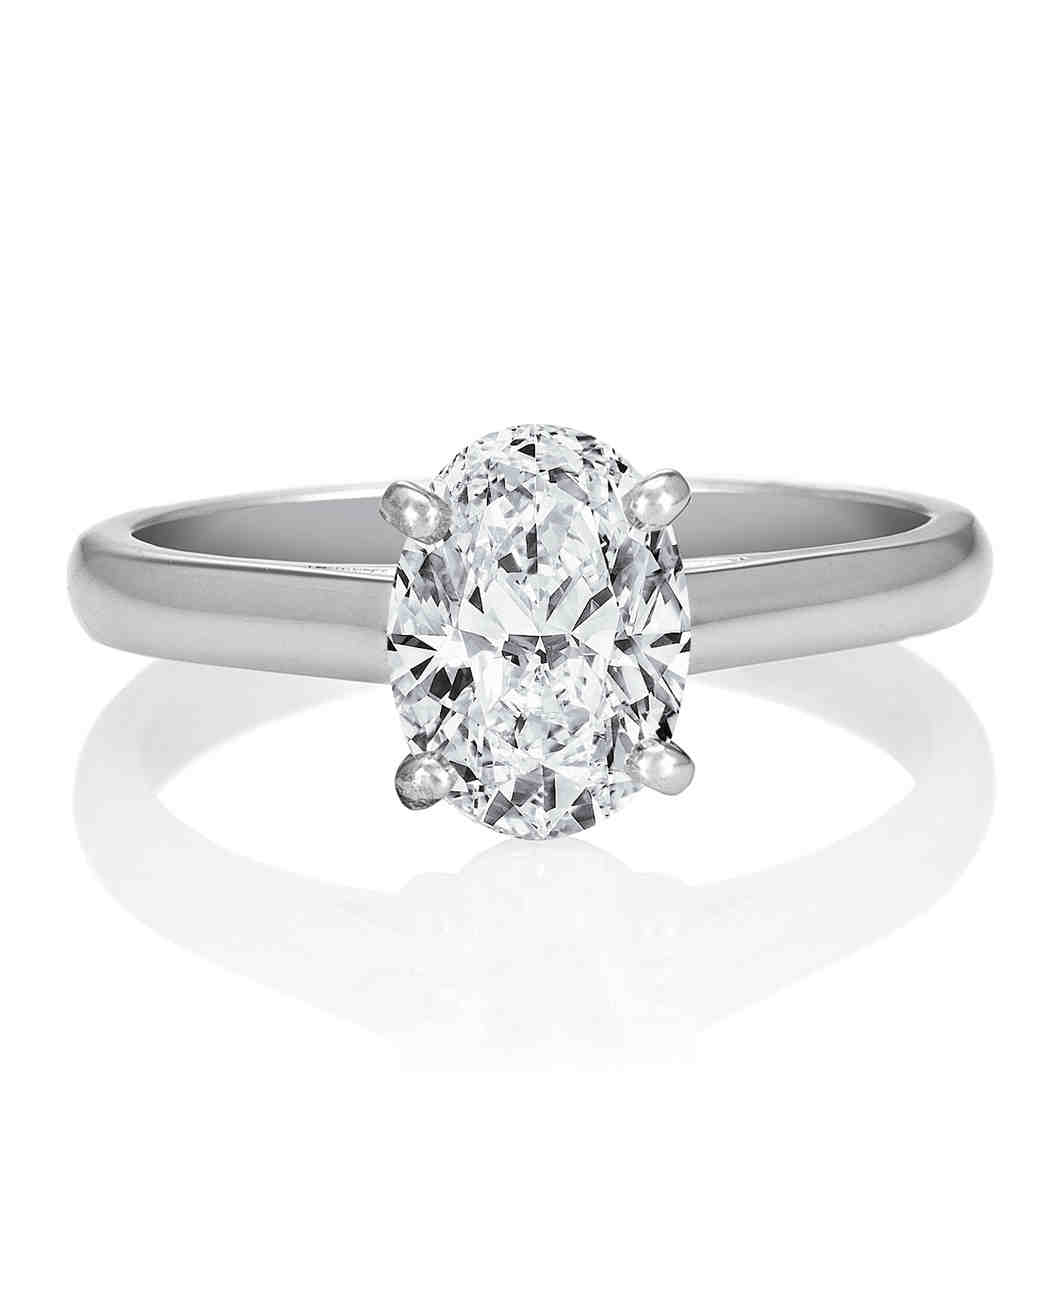 oval-cut-engagement-ring-debeers-0714_vert